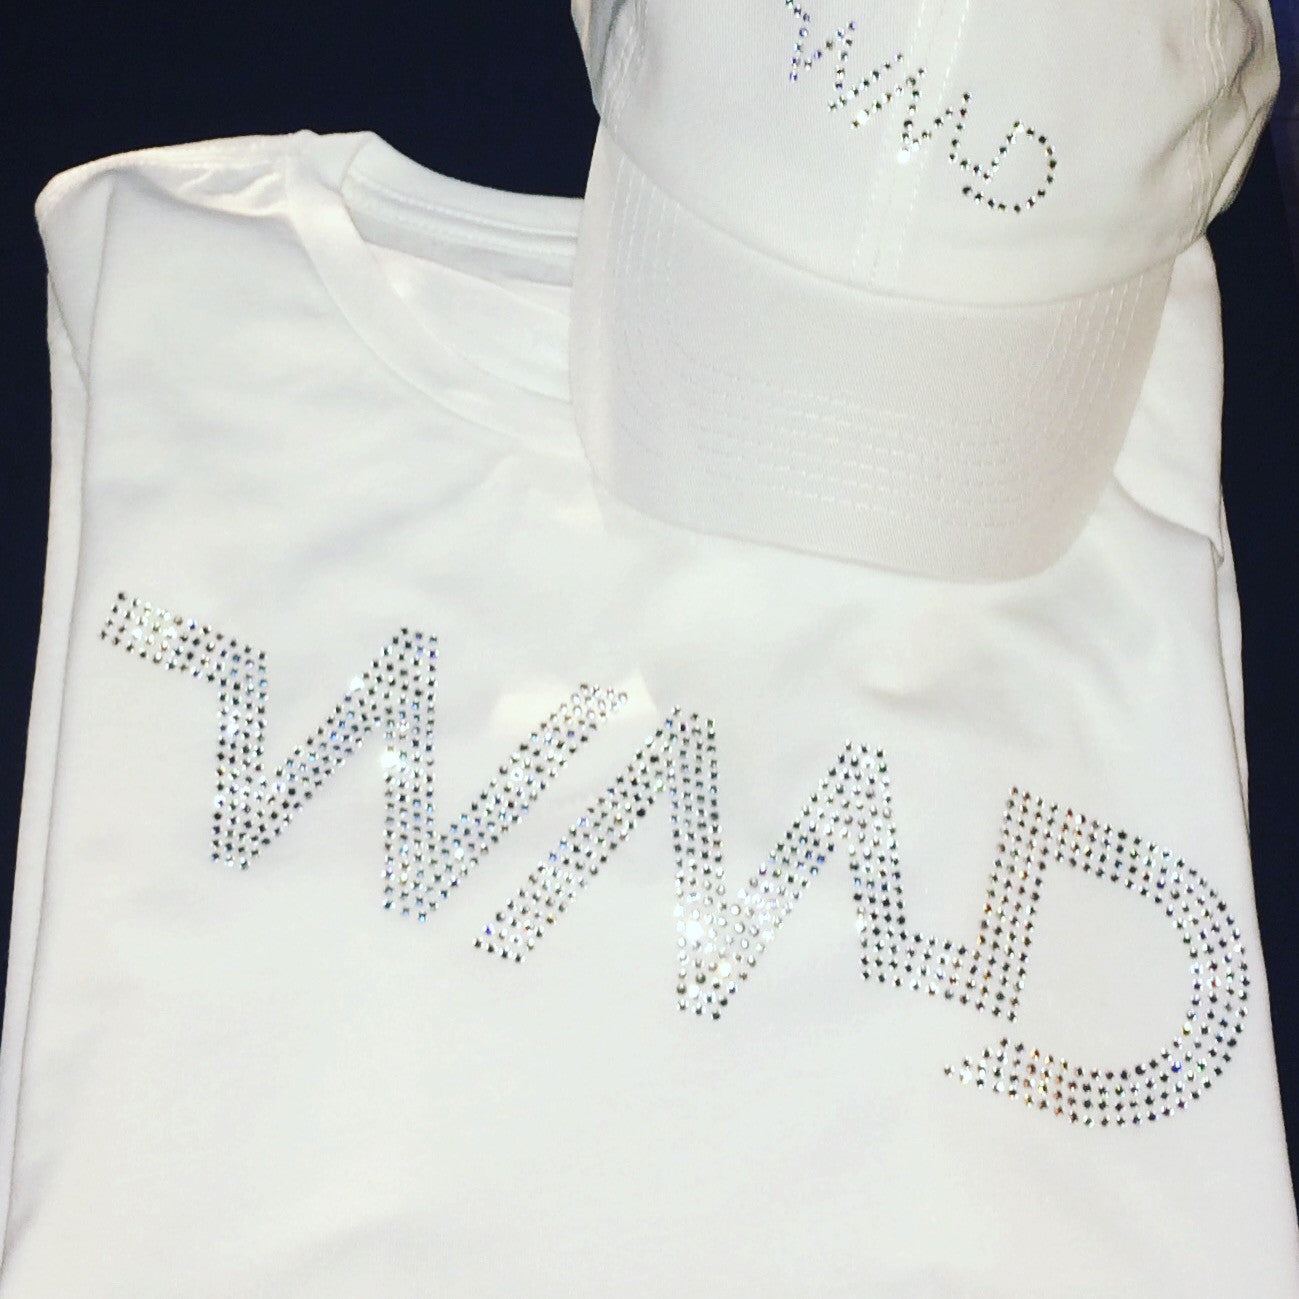 Women's WMD short sleeved shirt/Hat set